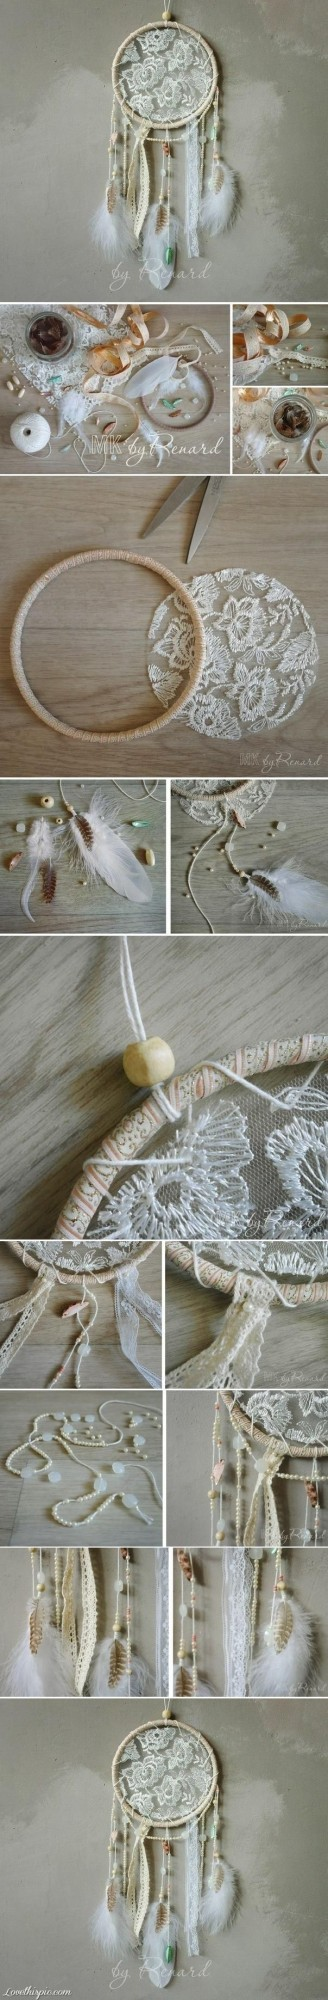 21 Great DIY Tutorials for Home Decoration  (18)